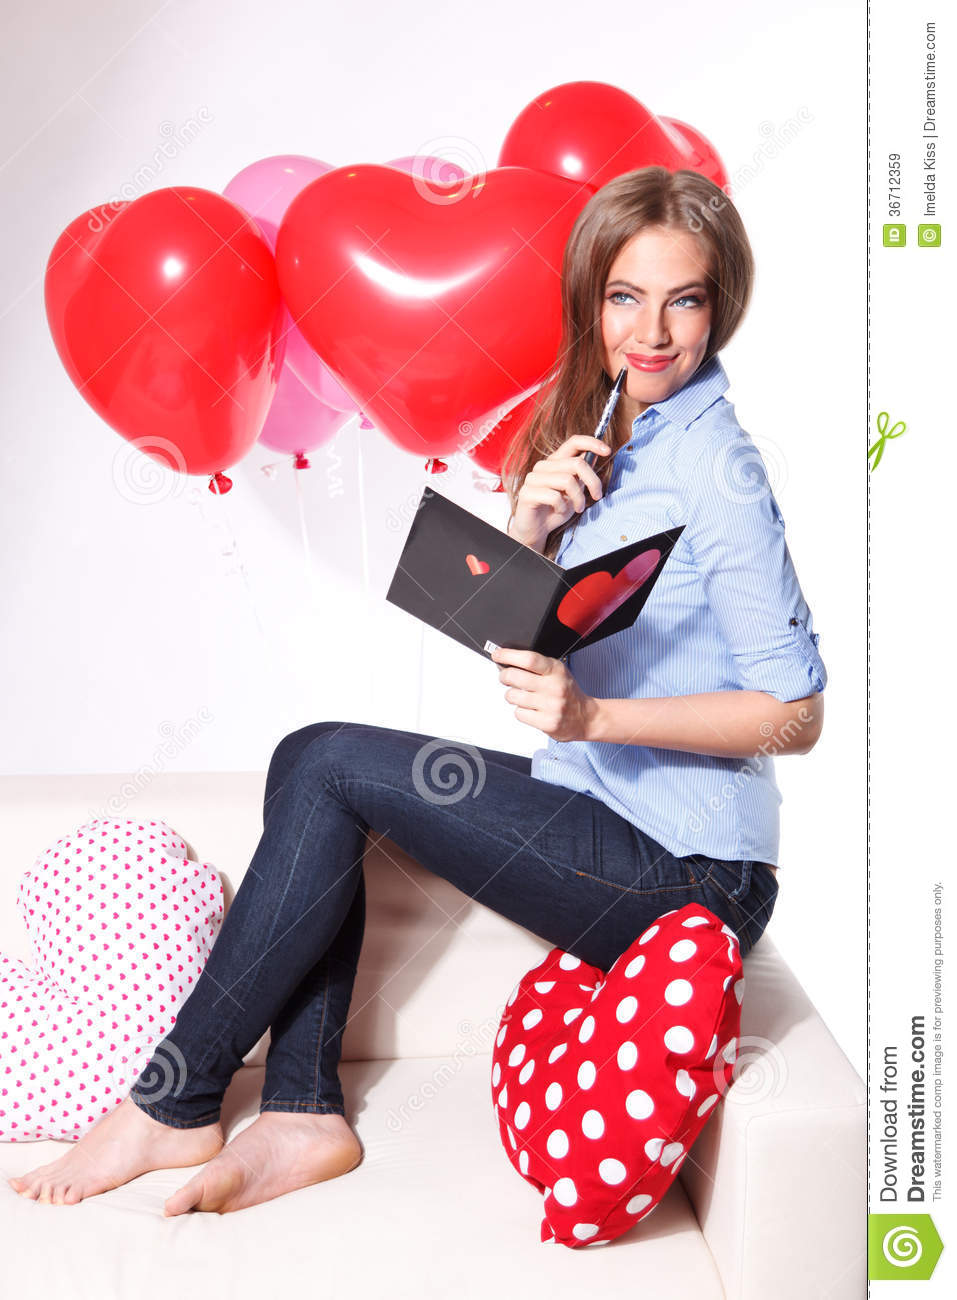 young love essay